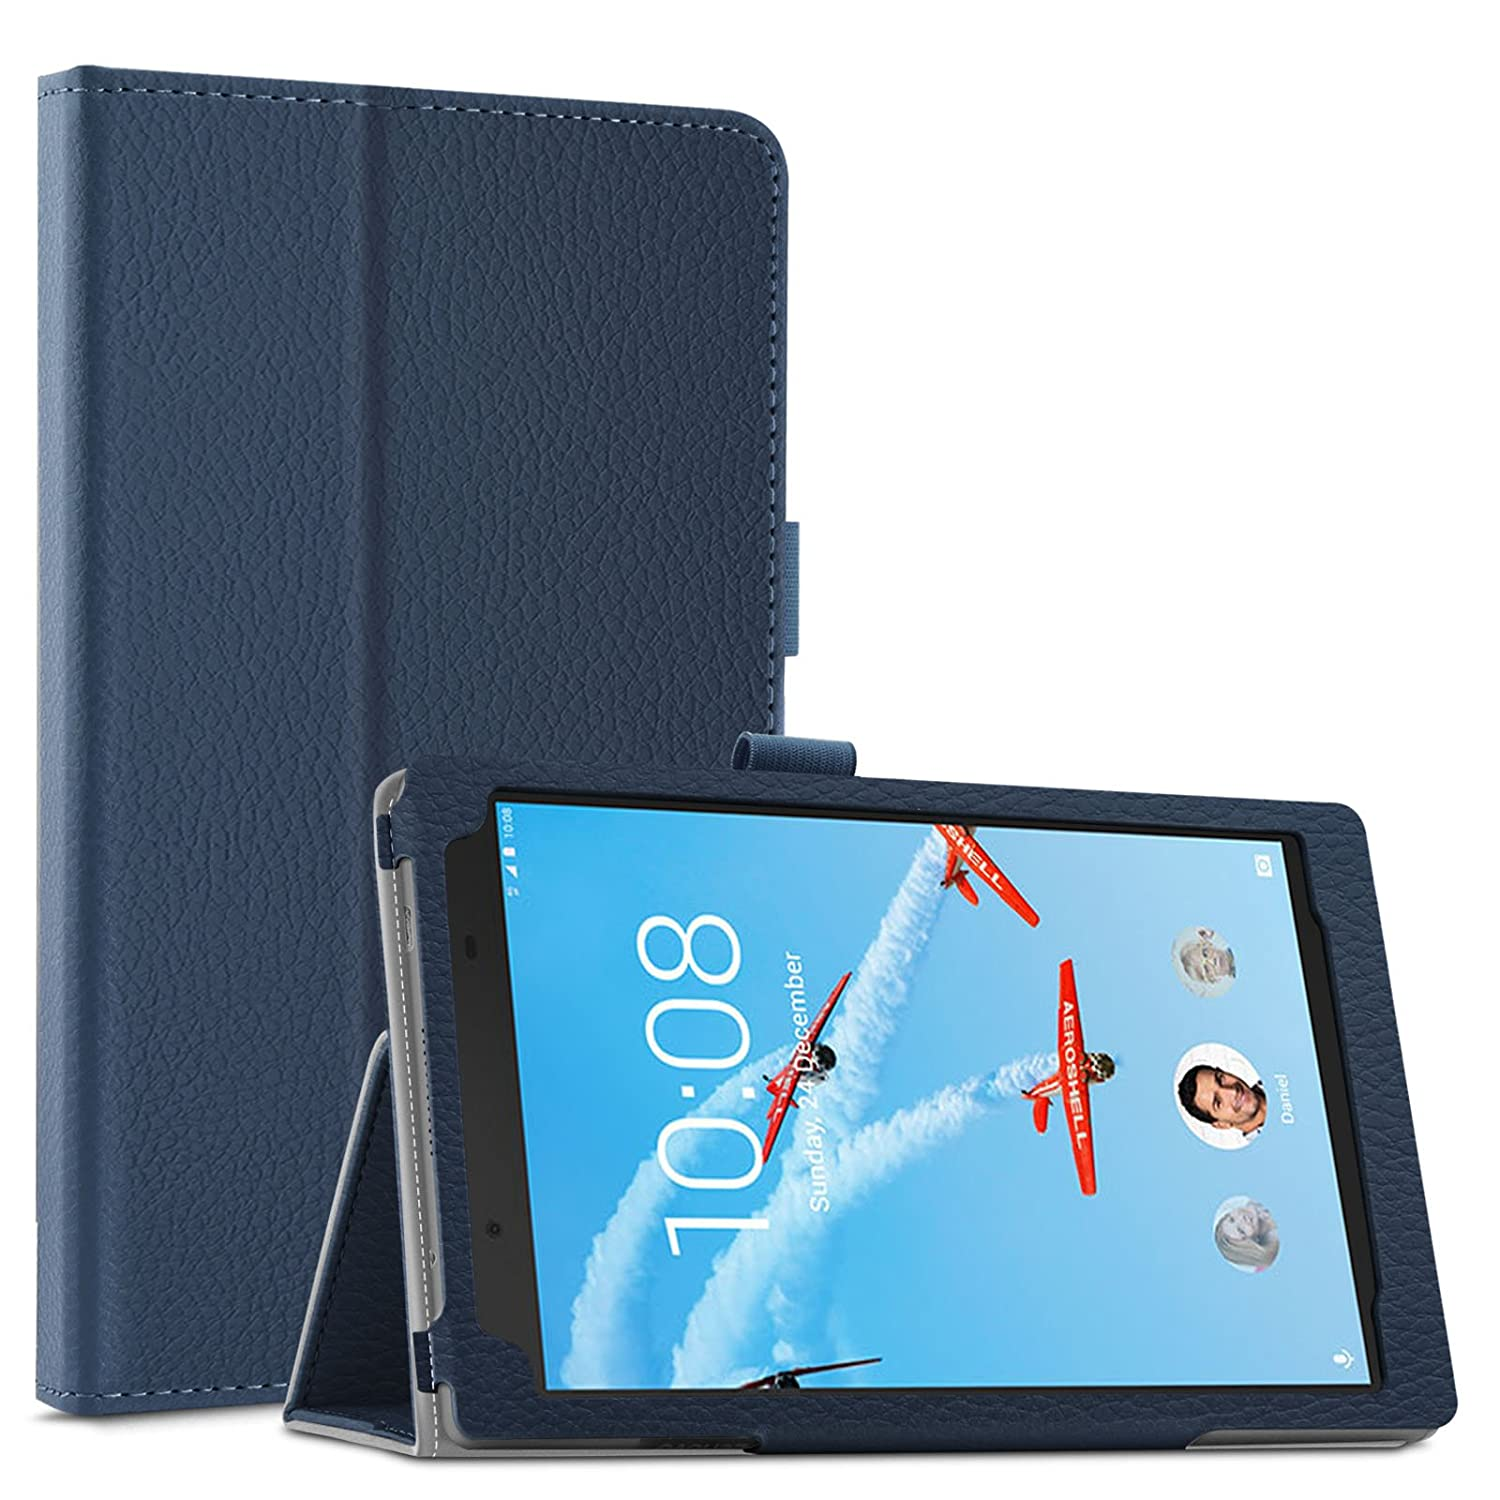 Amazon.com: Infiland Lenovo Tab 4 8 / Tab 4 8 Plus Case ...